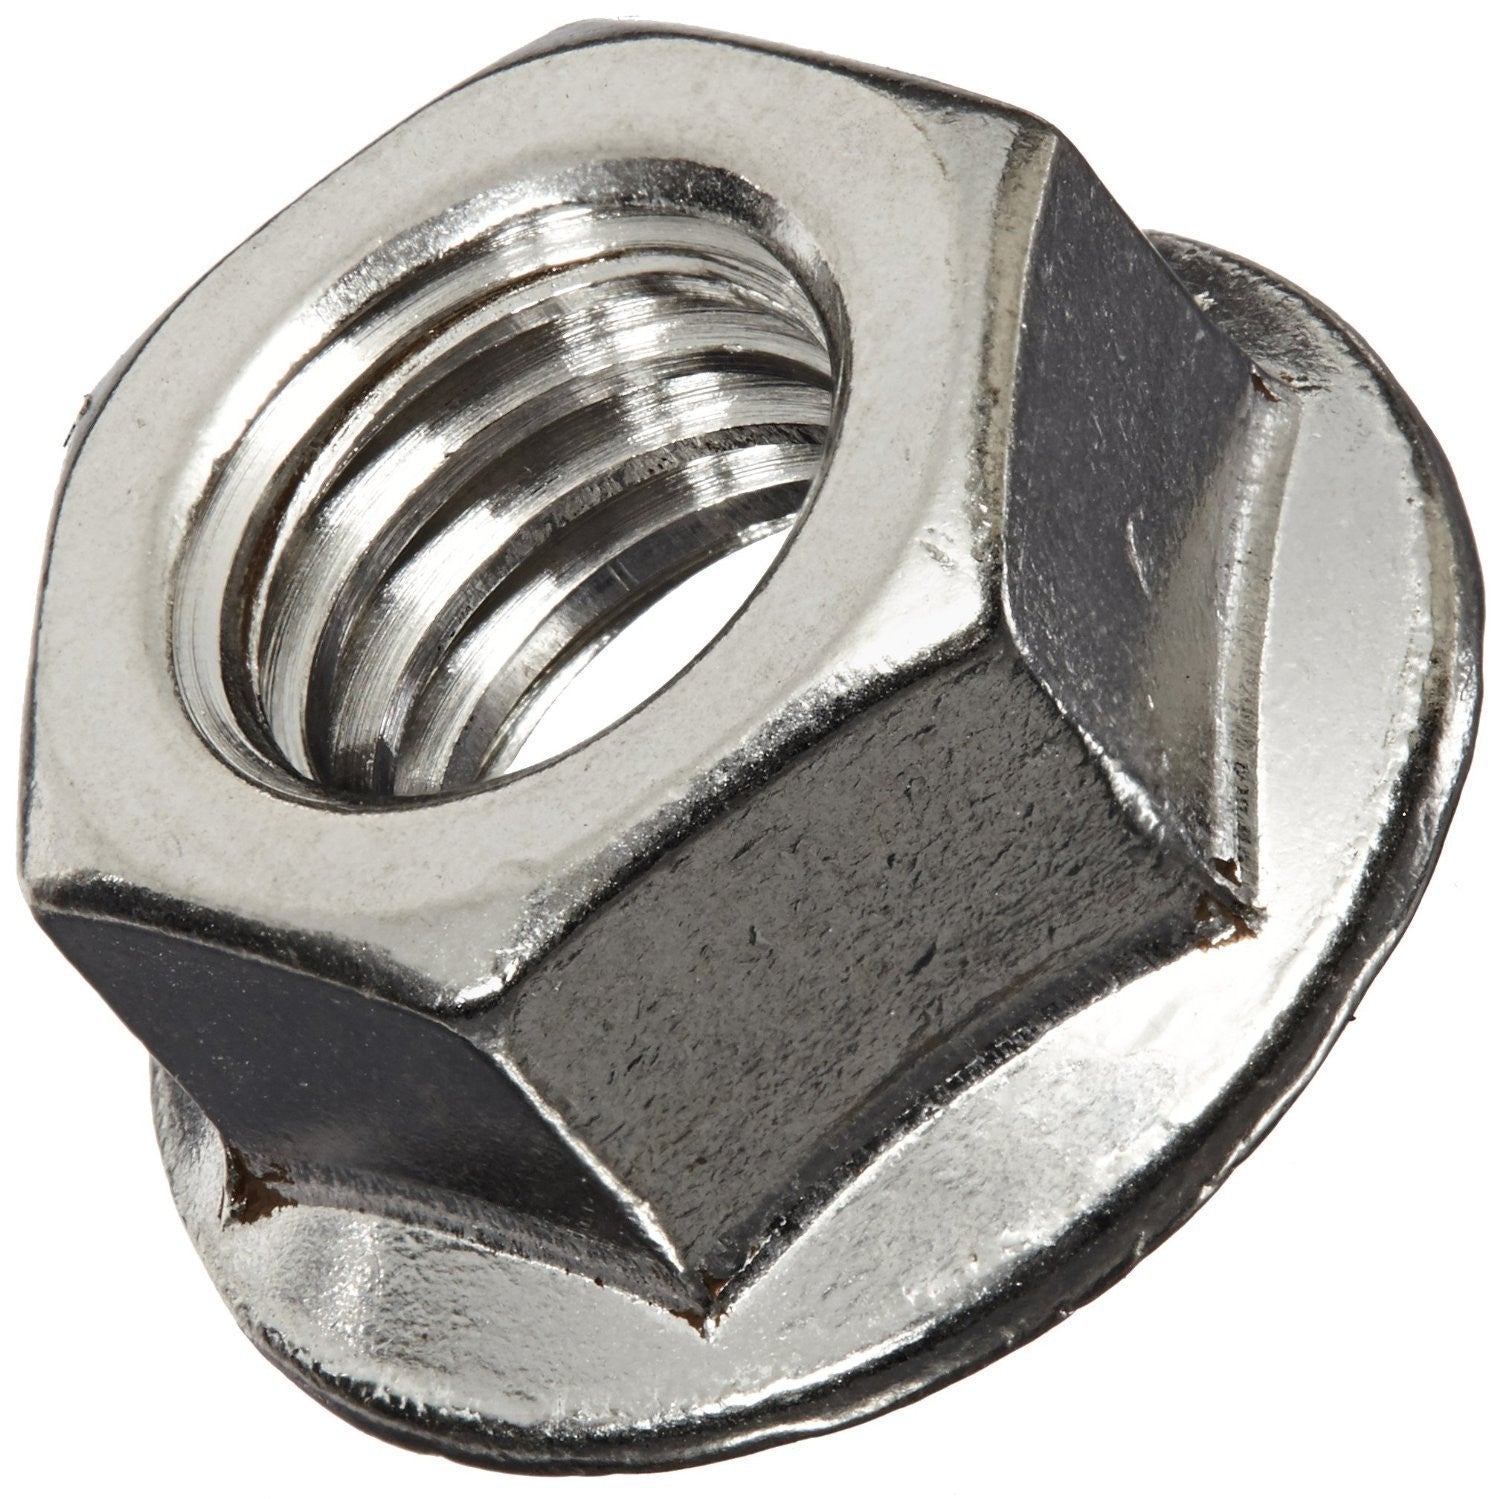 Stainless steel hex flange nut rkl tools hardware